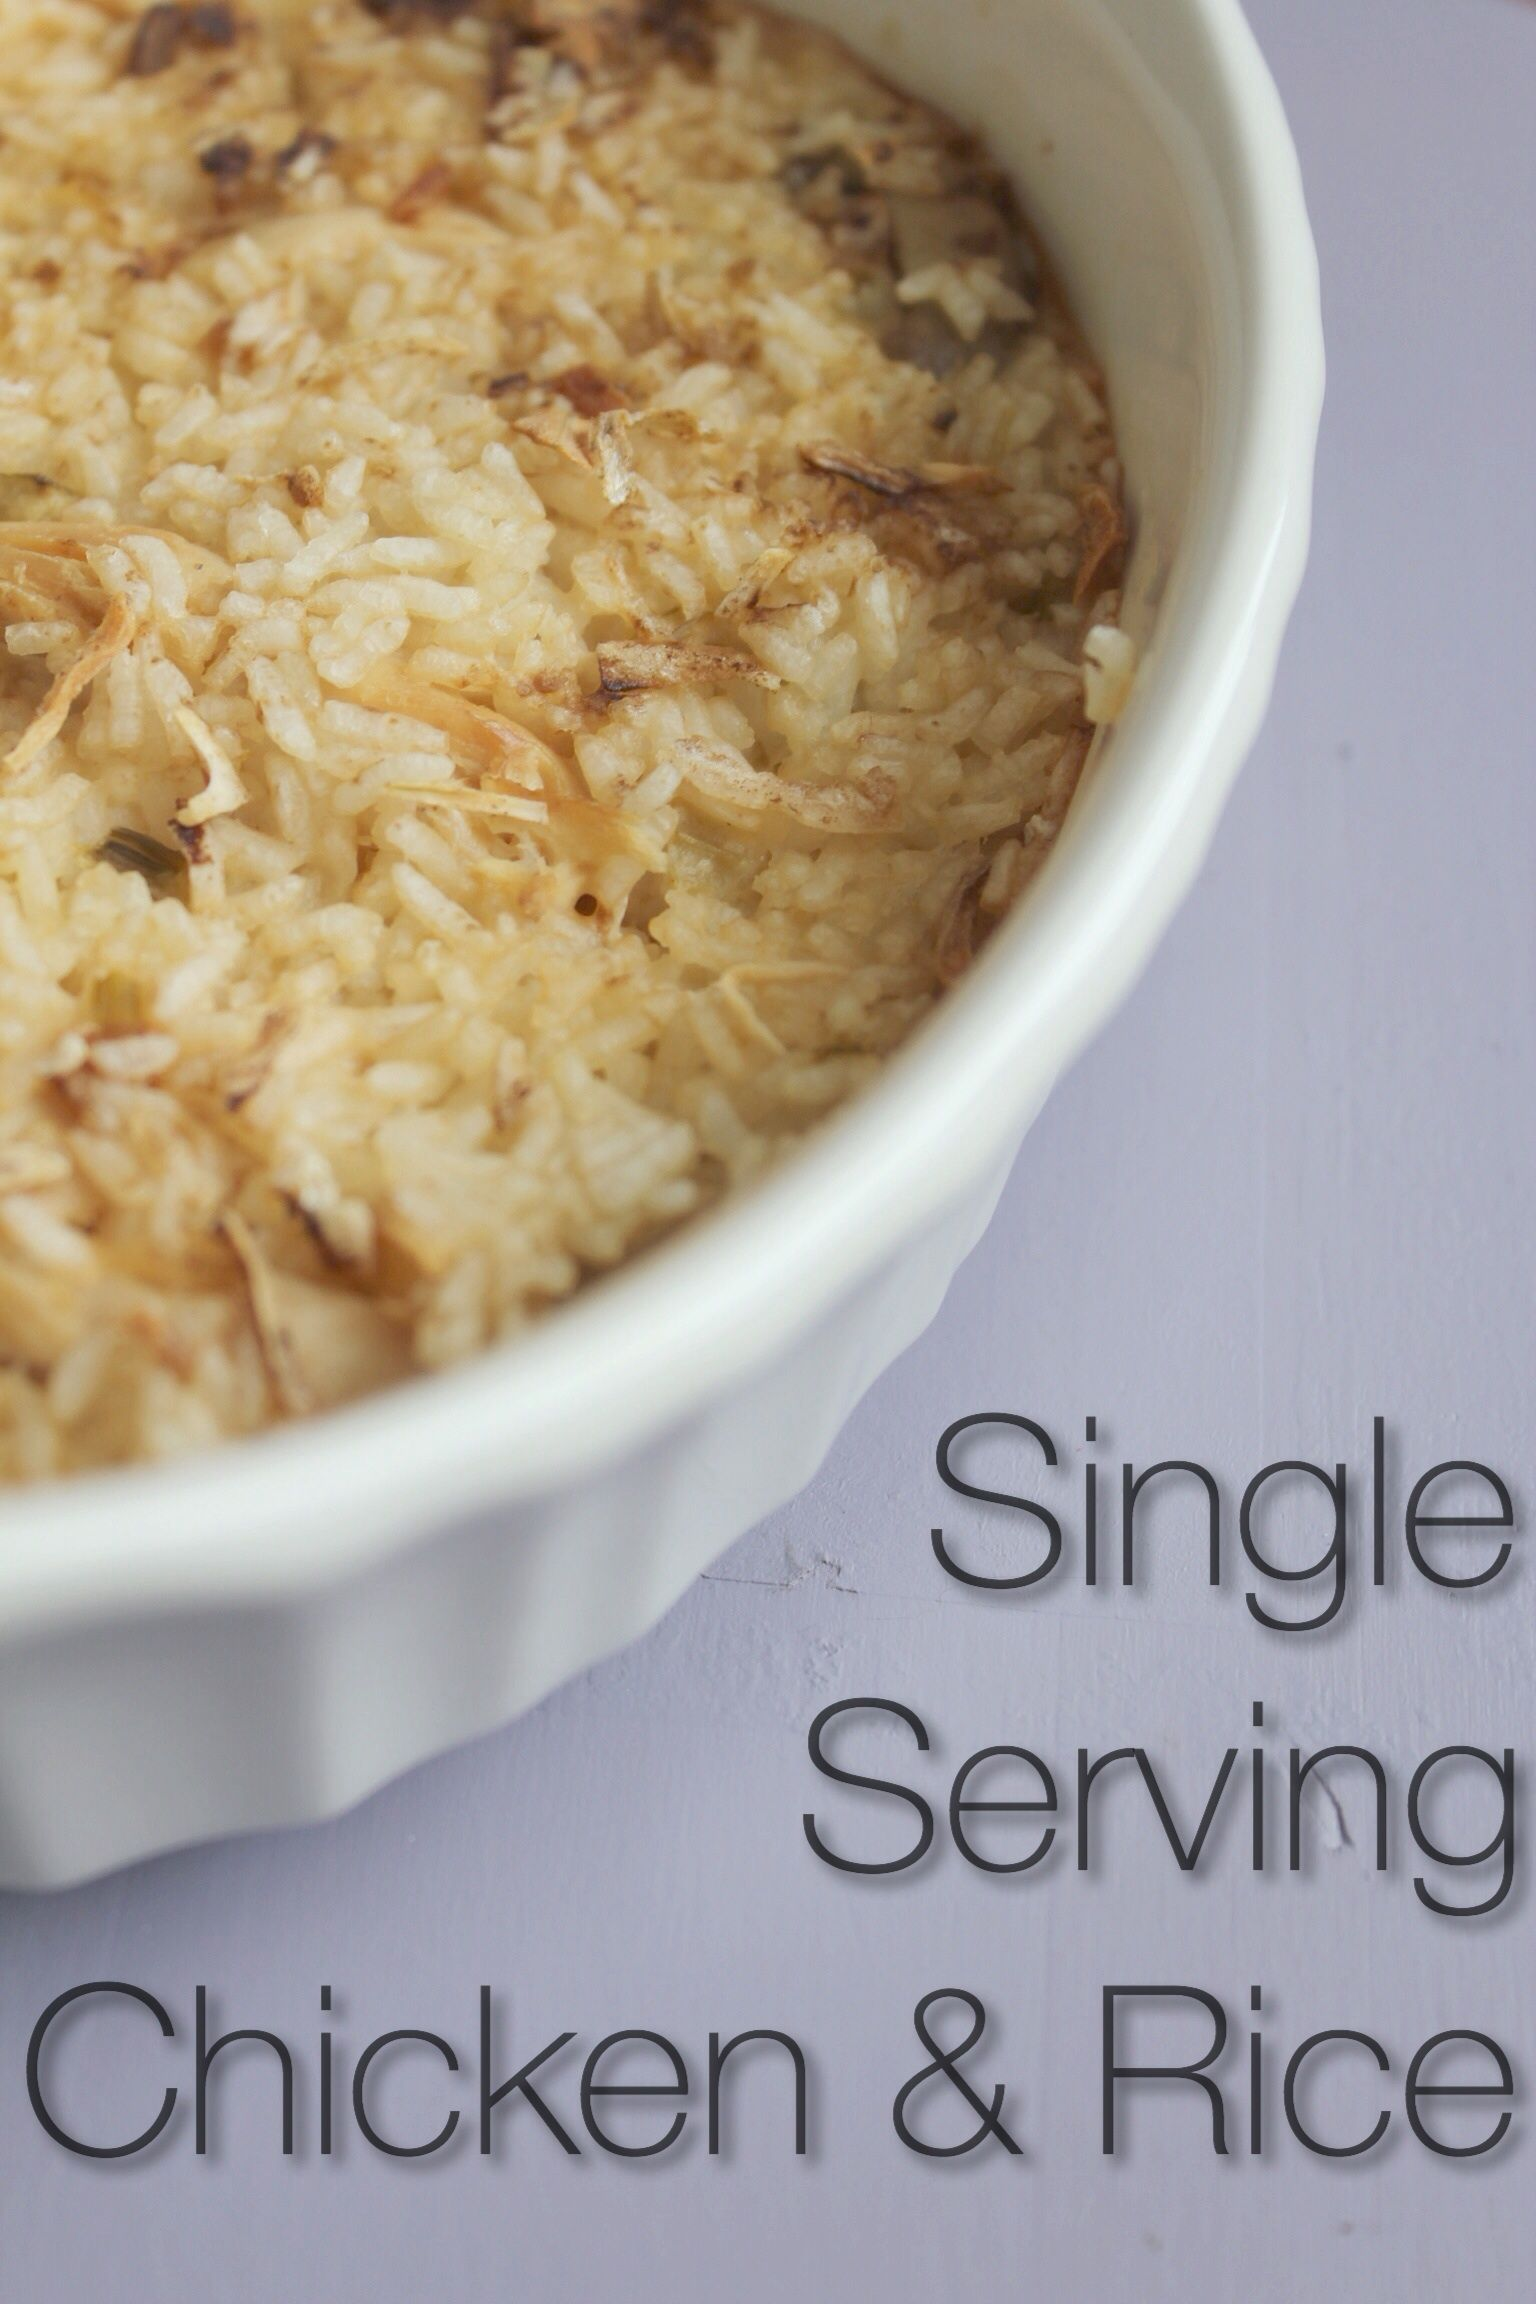 Quick And Easy Meals For One! Chicken And Rice! This Is My Favorite Dish